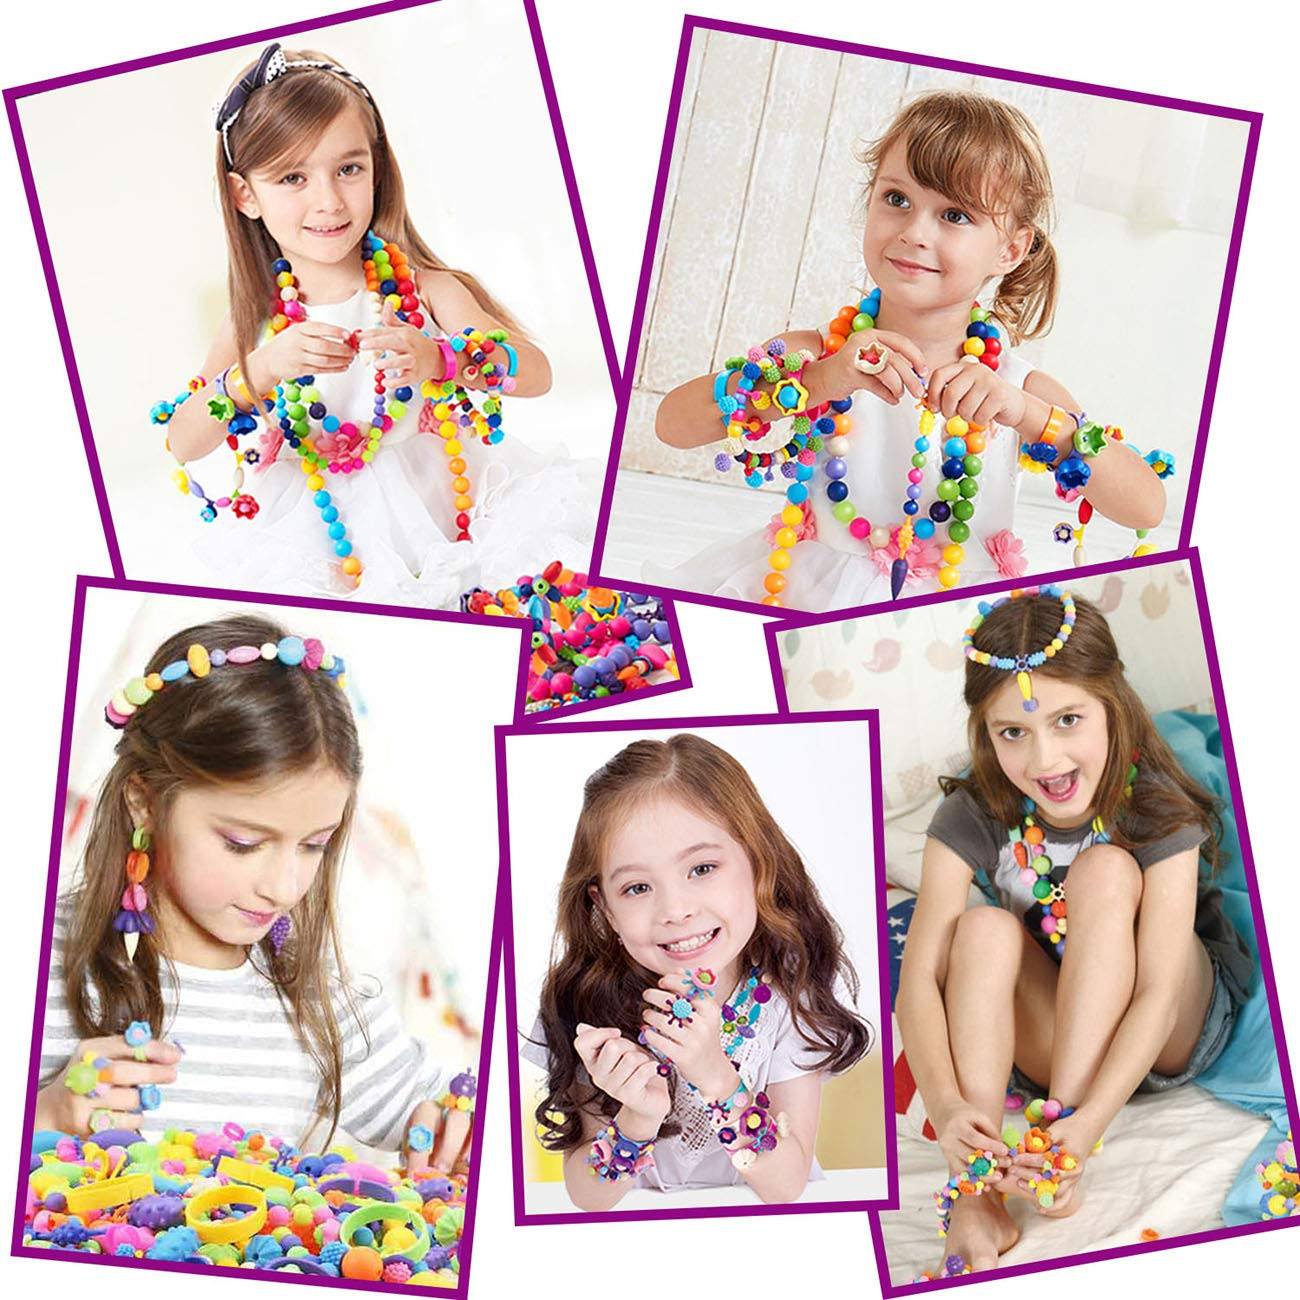 5 6 Bracelet Necklace Ring Hairband Earrings Arts and Crafts Toys for Kids 4 7 ROSYKIDZ Snap Pop Beads Set 8 600 Pcs Arty Beads Jewelry Making Kit with Rhinestone Sticker 9 Years Old Girls